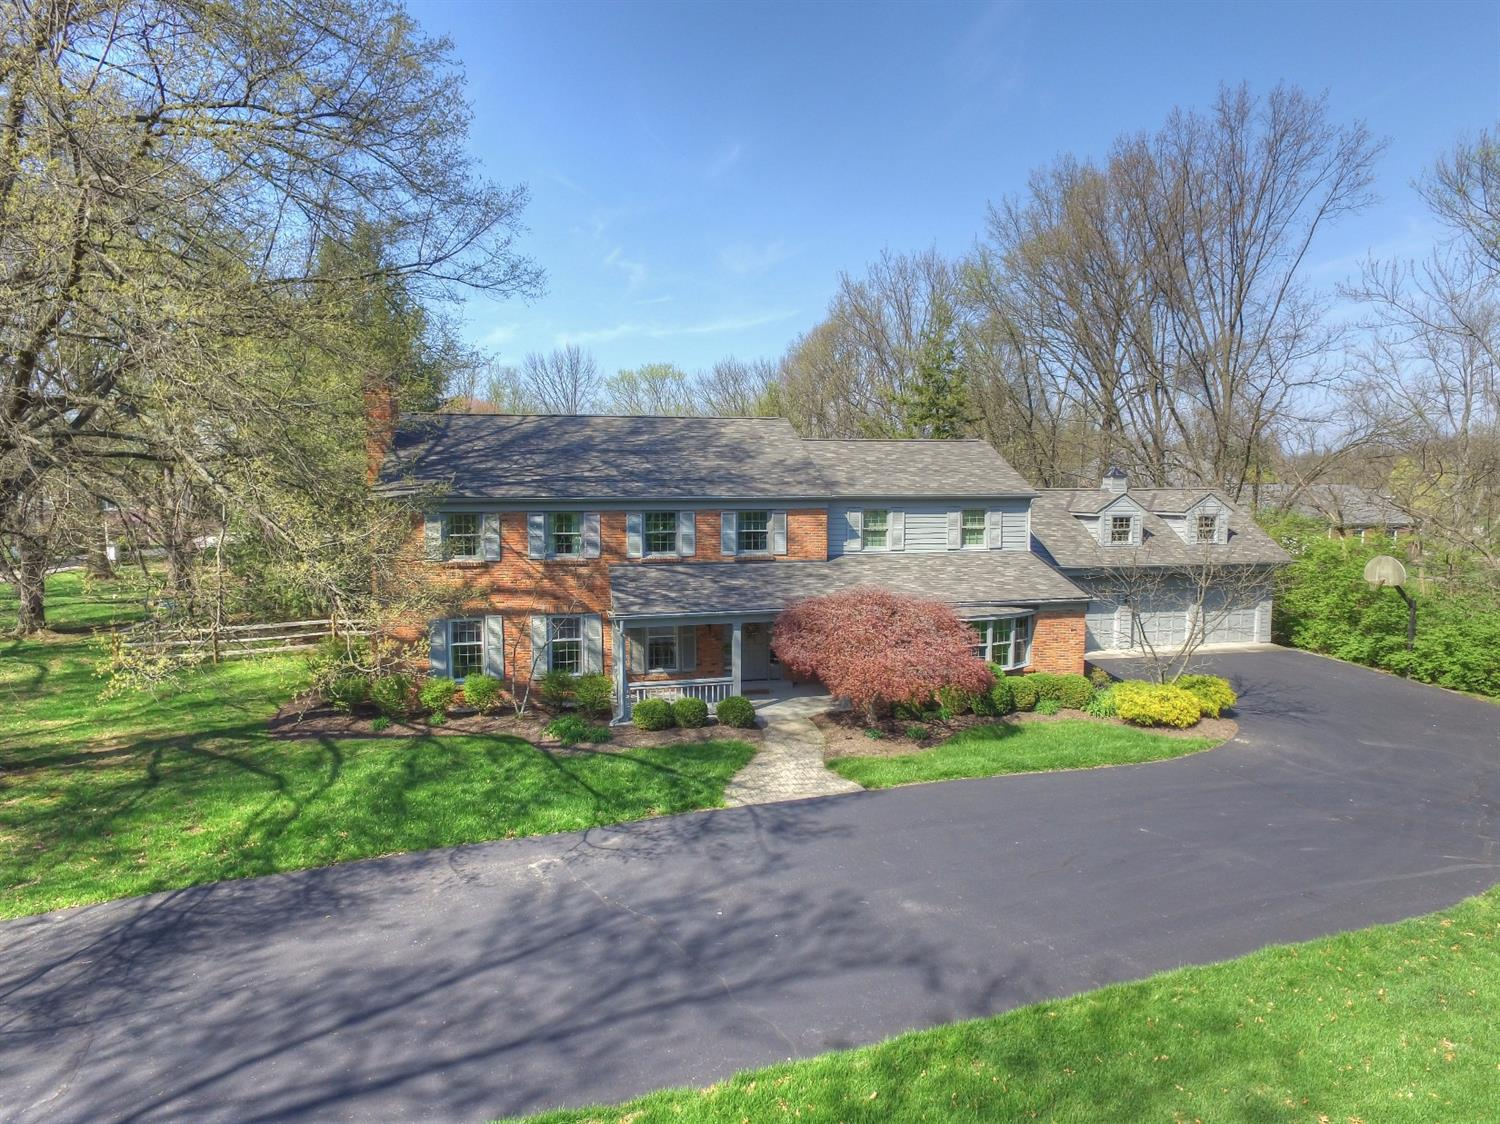 8460 Indian Hill Road, Indian Hill, OH 45243